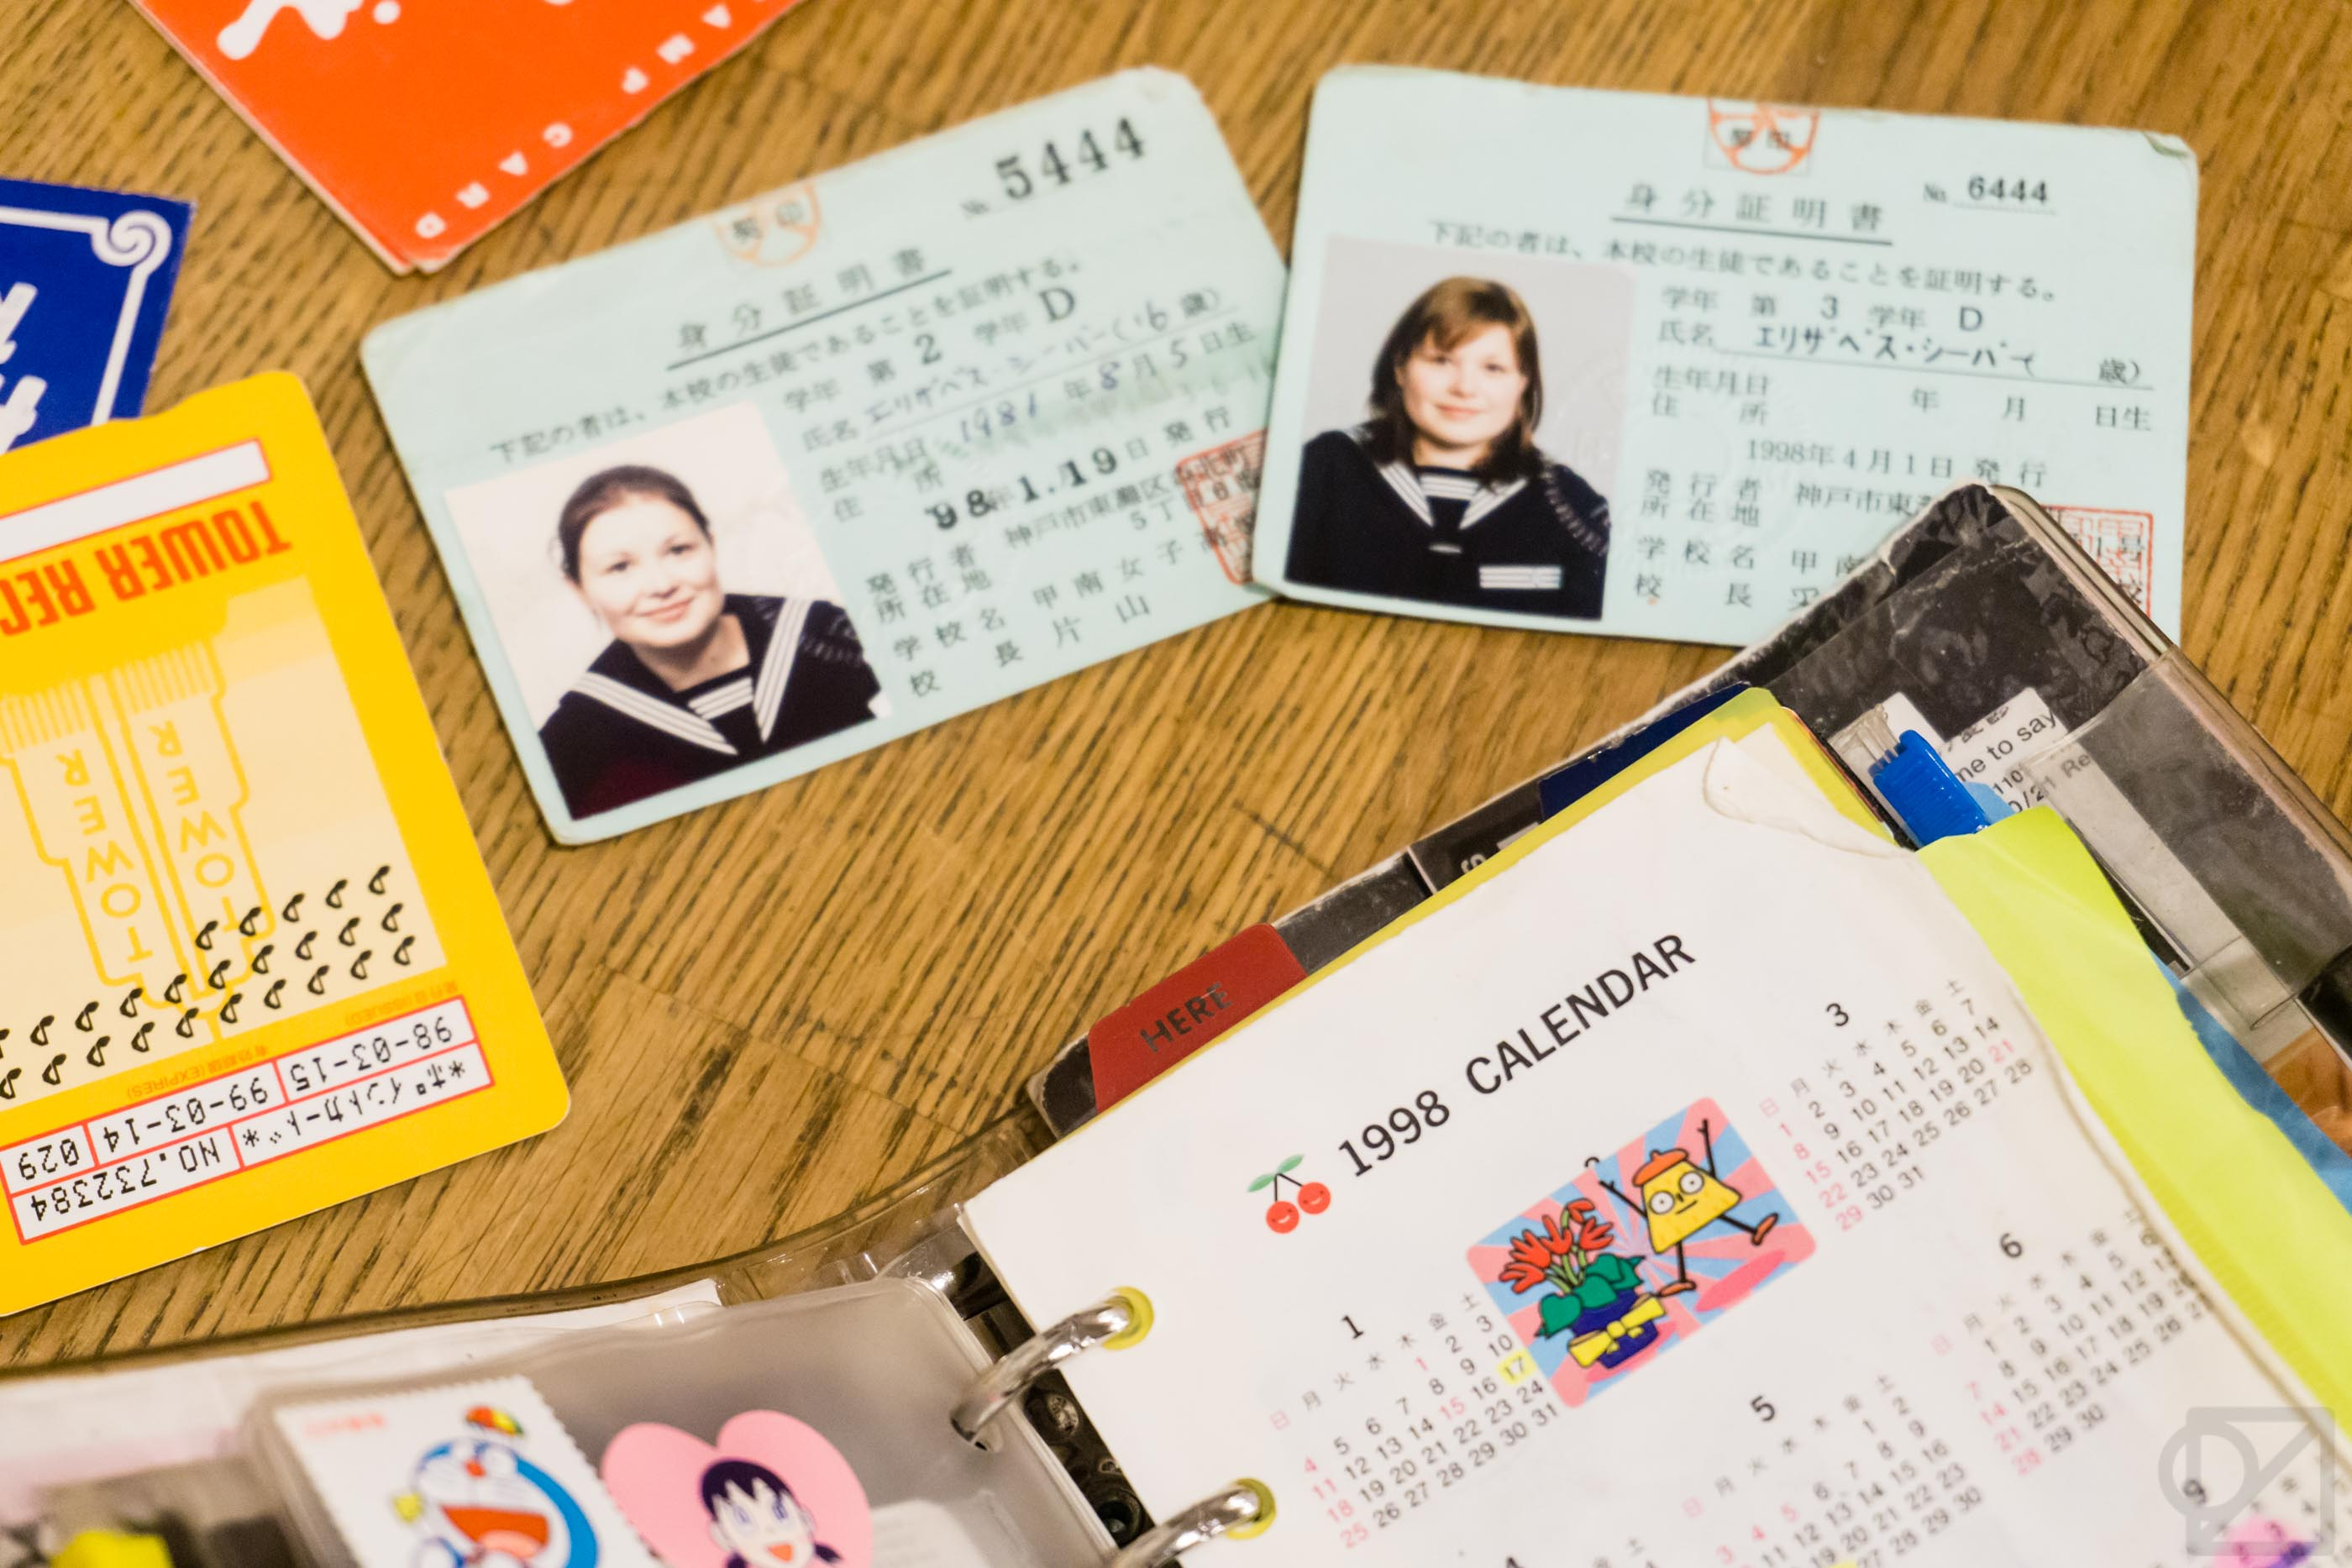 Liz's planner from her first study abroad trip in Kobe, Japan